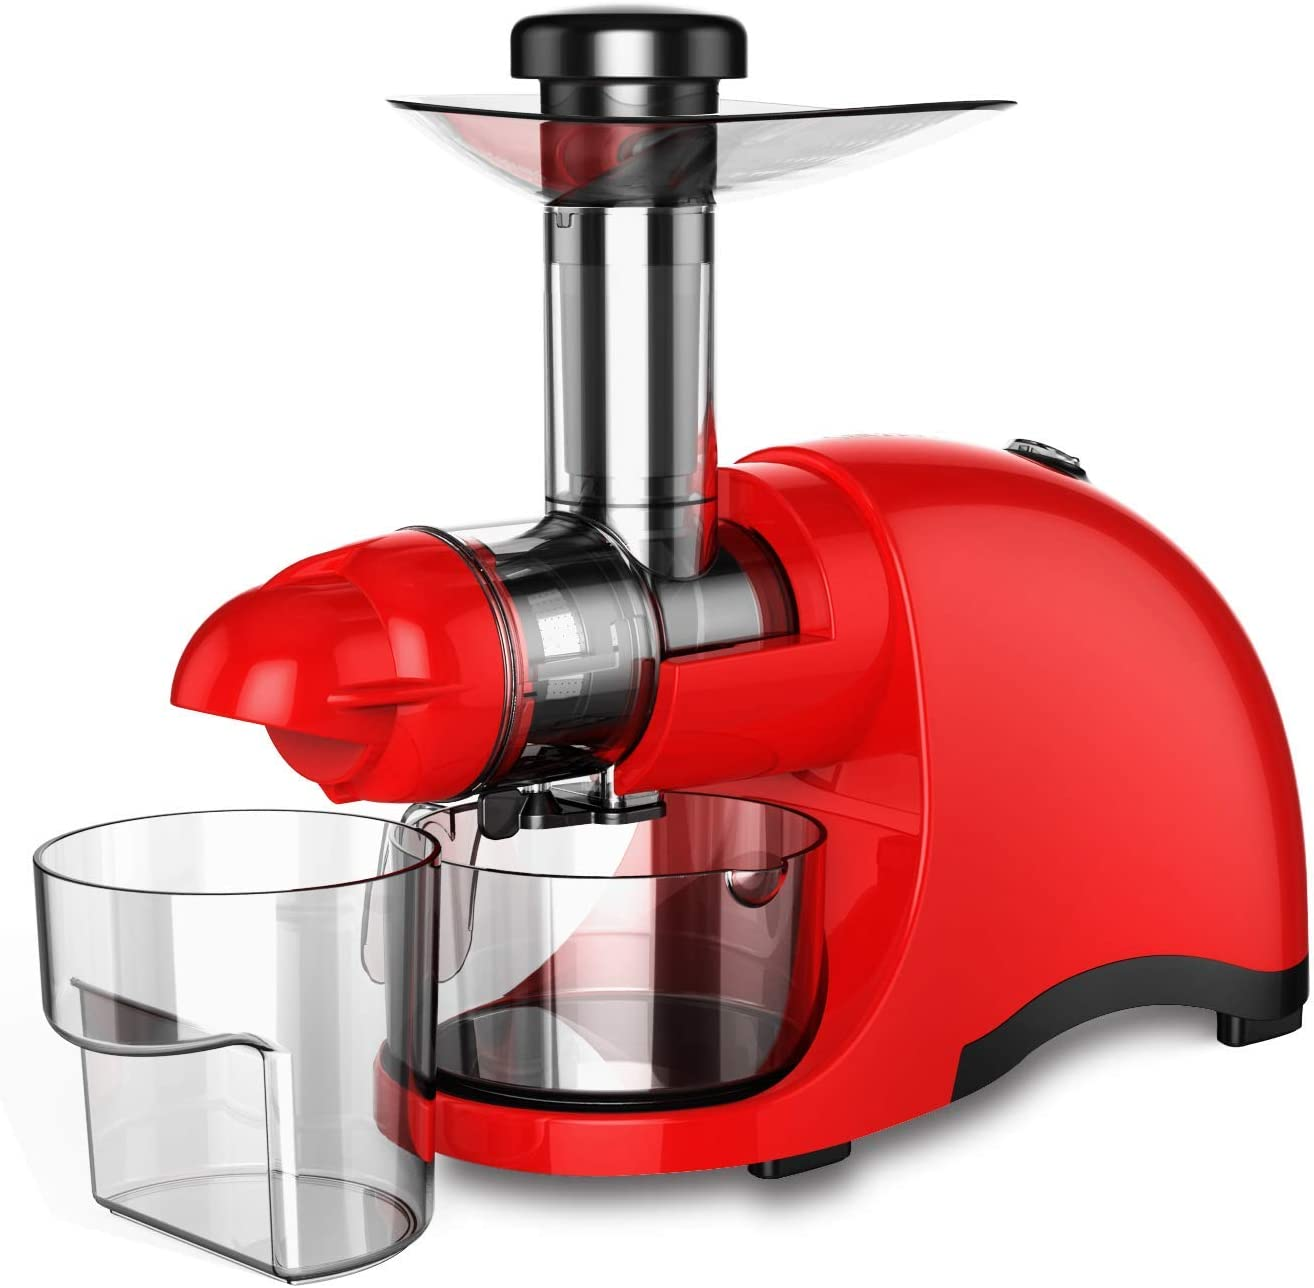 Greenis F-9600 Horizontal Masticating Juicer, Cold Press Professional Juicer Slow Speed Creates Continuous Fresh Healthy Fruit Vegetable & Leafy Greens Juice at 60 RPM High Juice Yield, 150-Watt, Tritan Material Ultra-Durable and BPA Free, (Red)